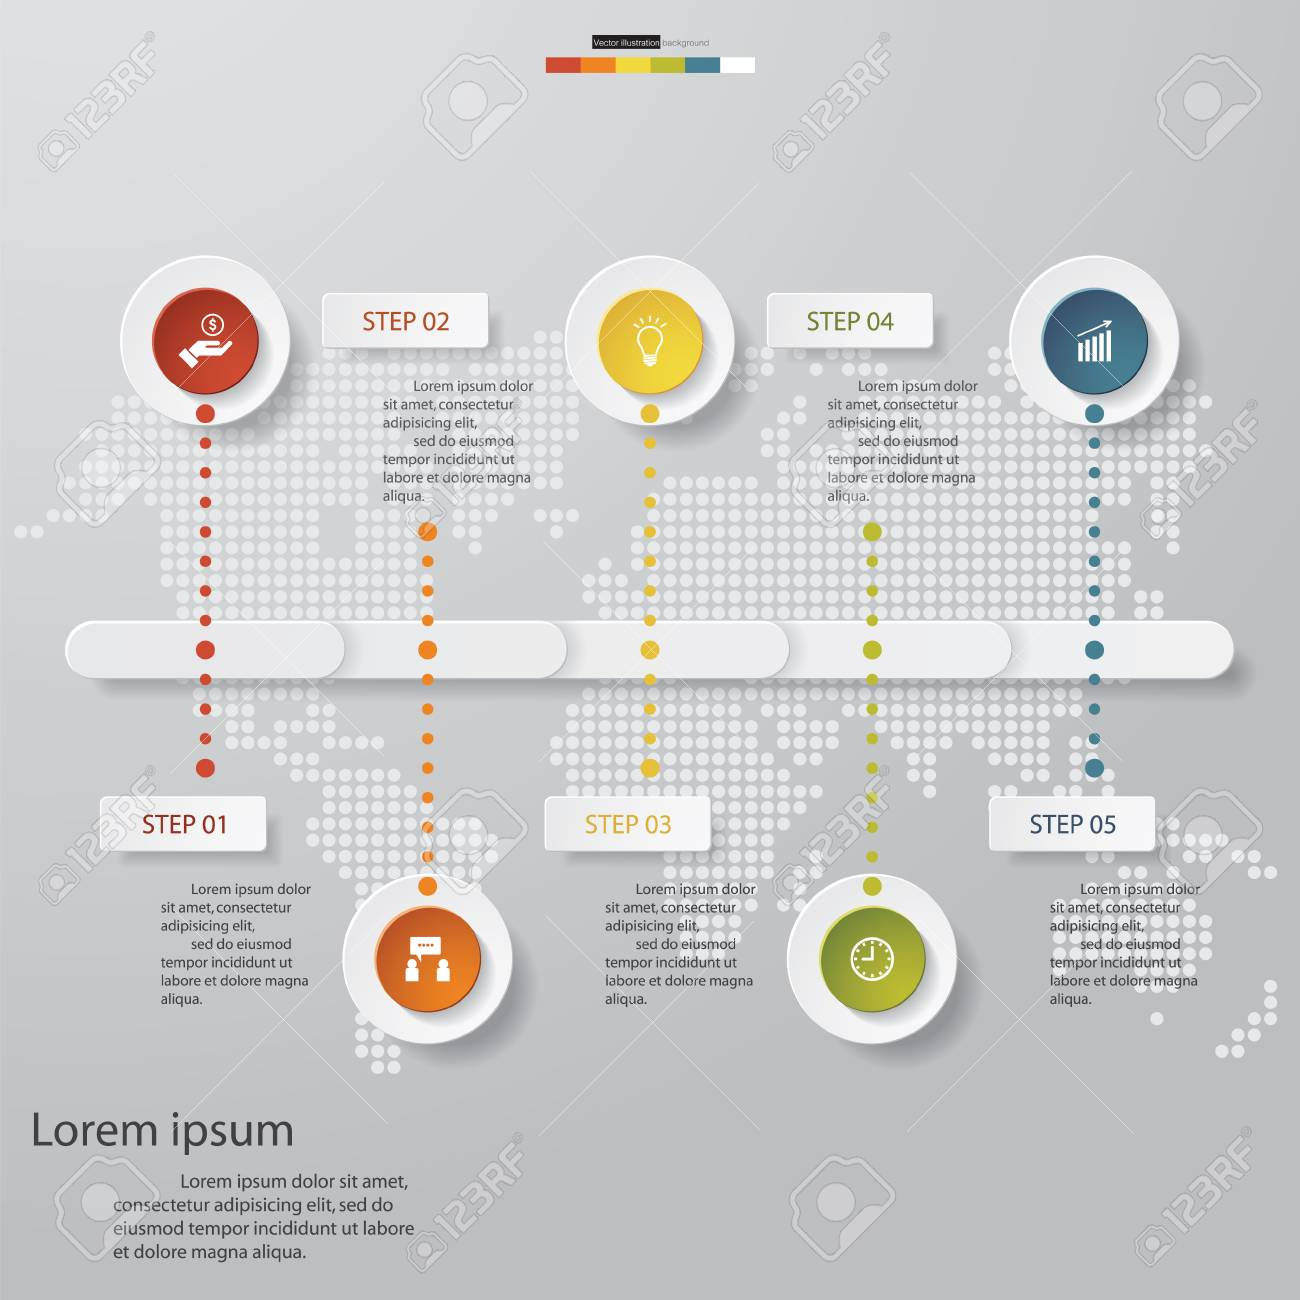 hight resolution of design business chart 5 steps diagram template graphic or website layout stock vector